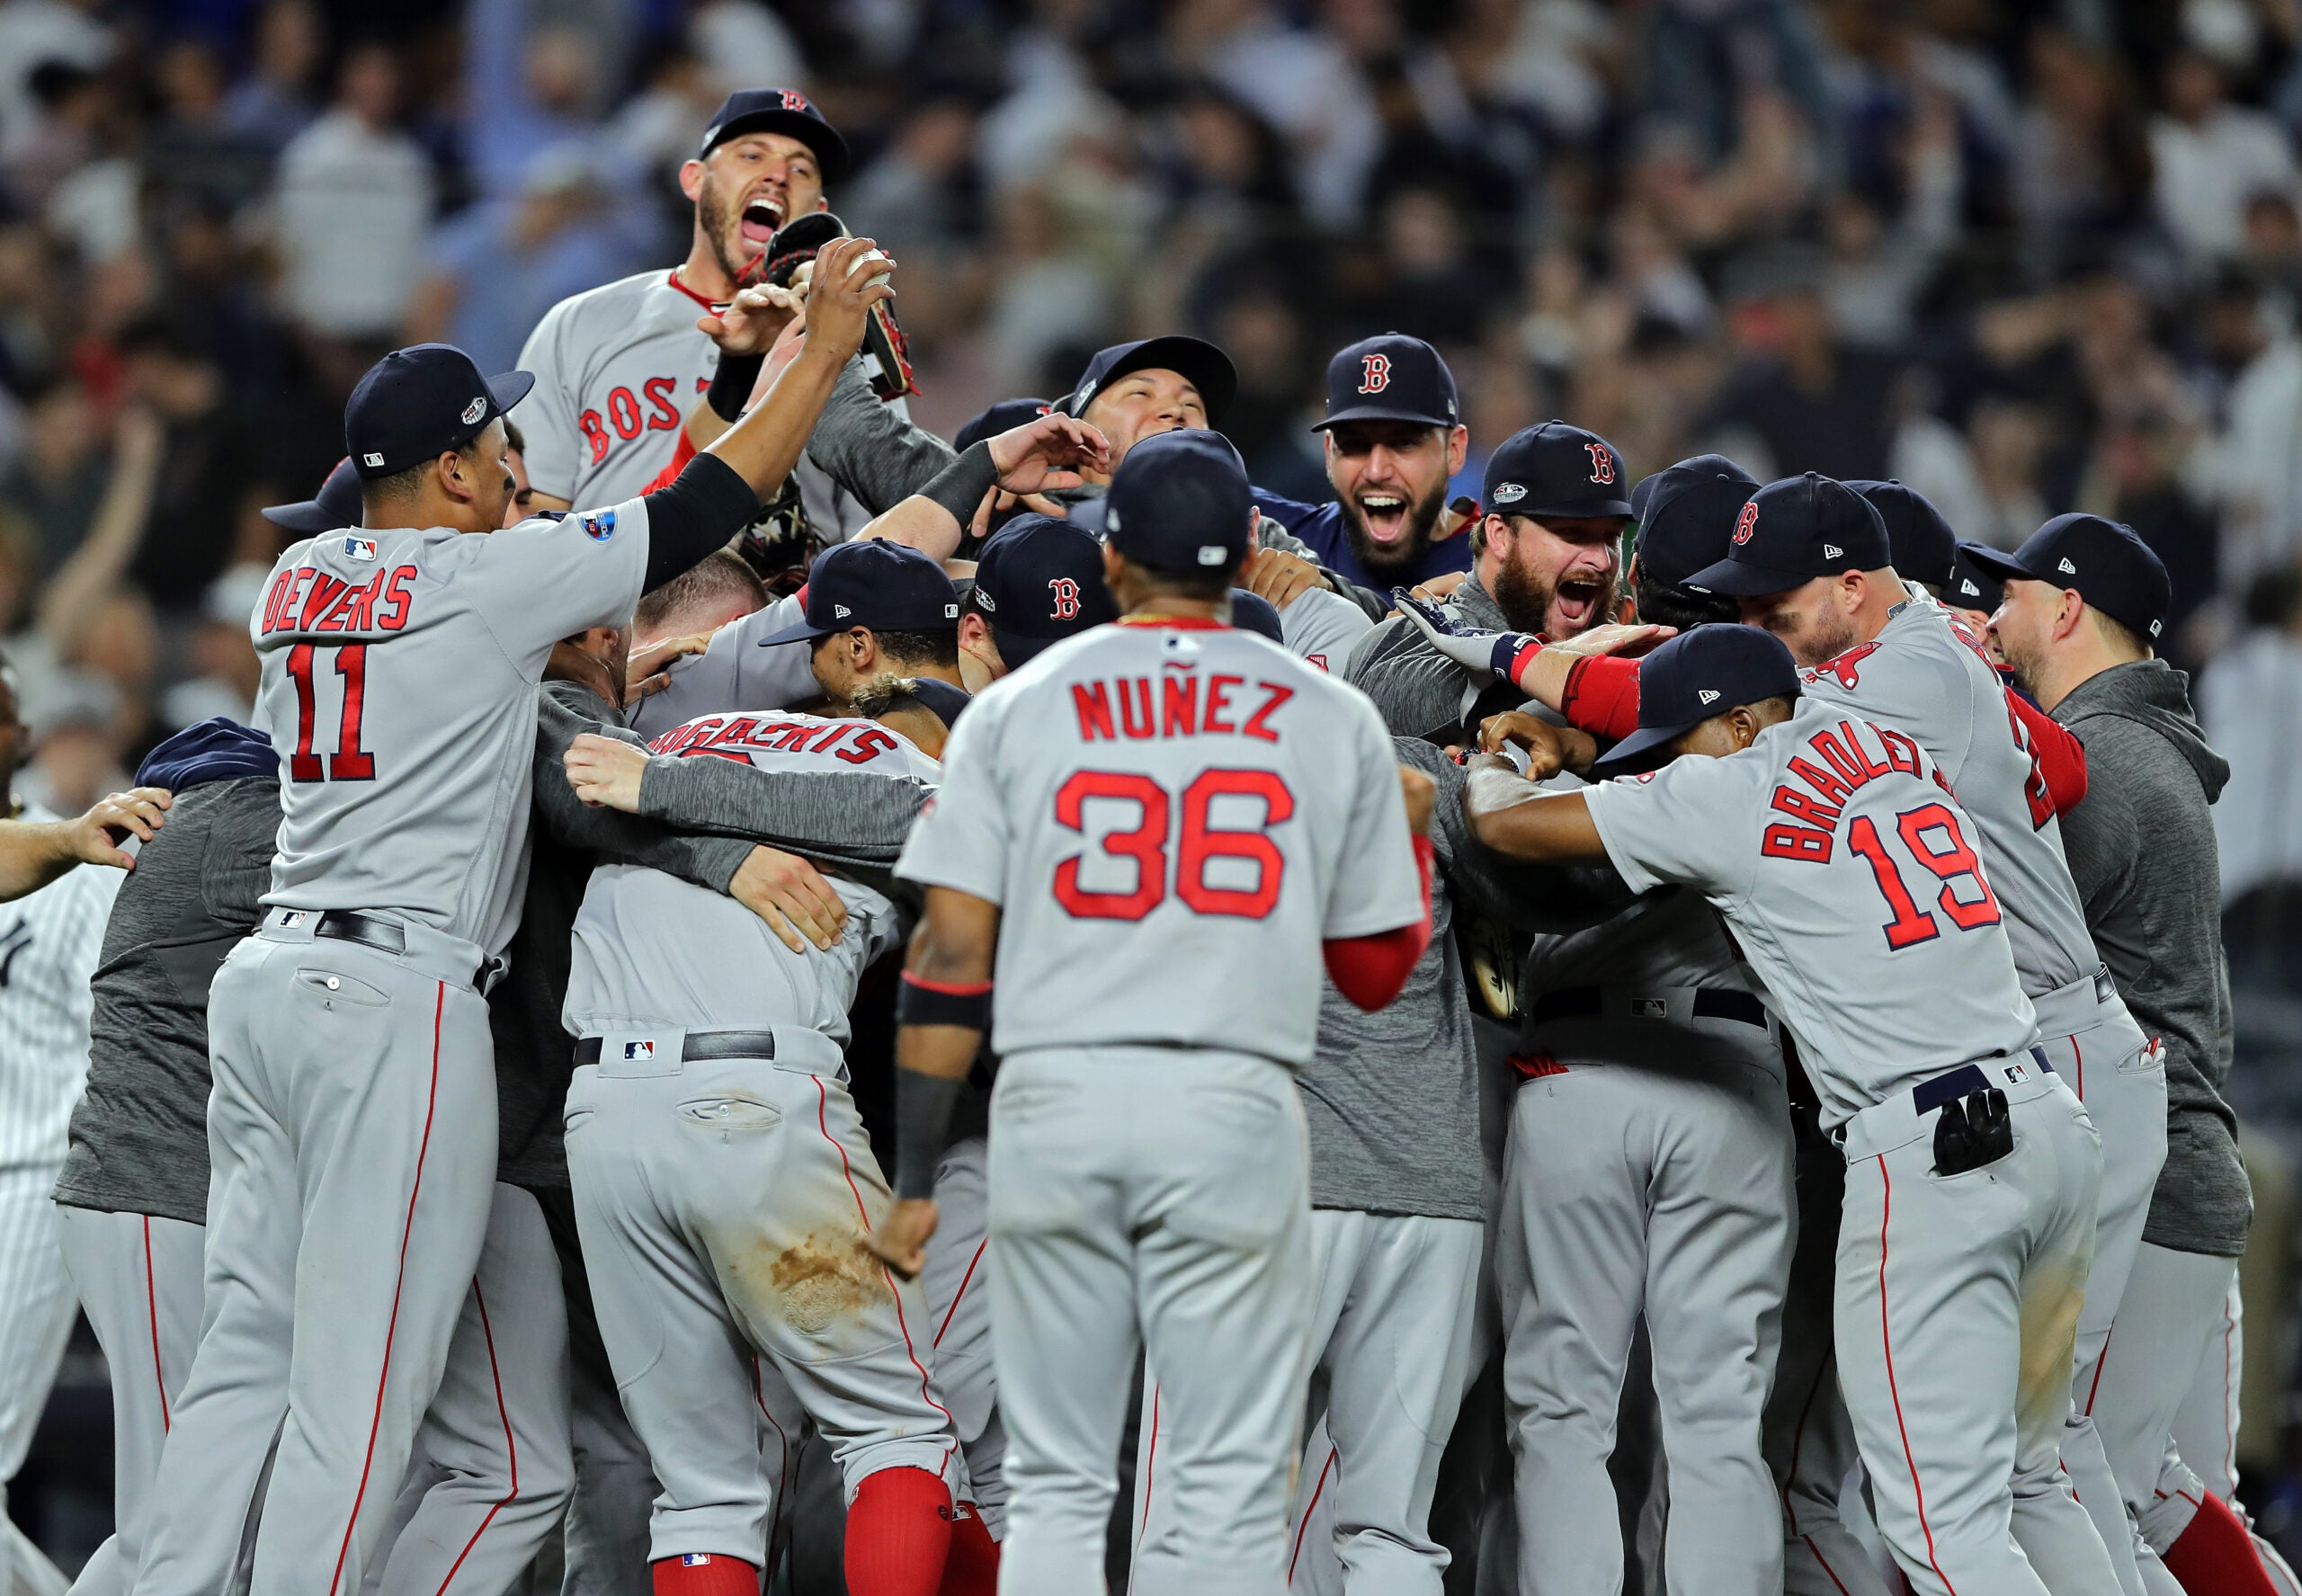 The Red Sox celebrate in Yankee Stadium after advancing to the ALCS.